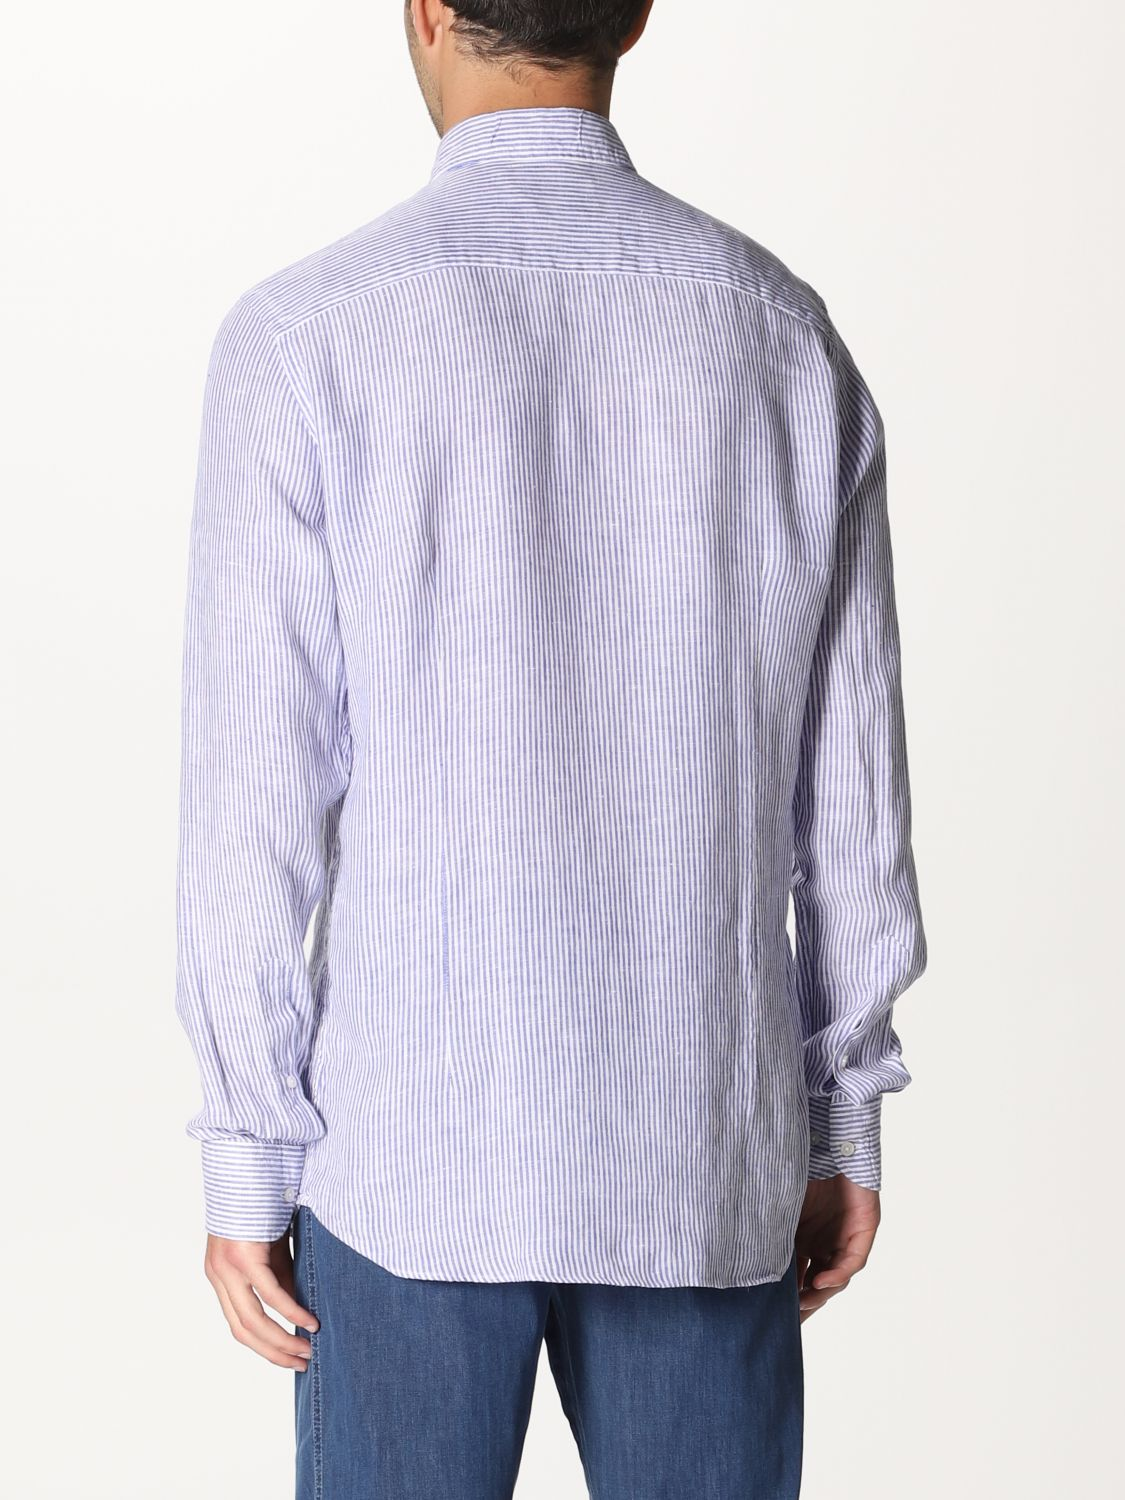 Chemise An American Tradition: Chemise homme Bd Baggies rayé 2